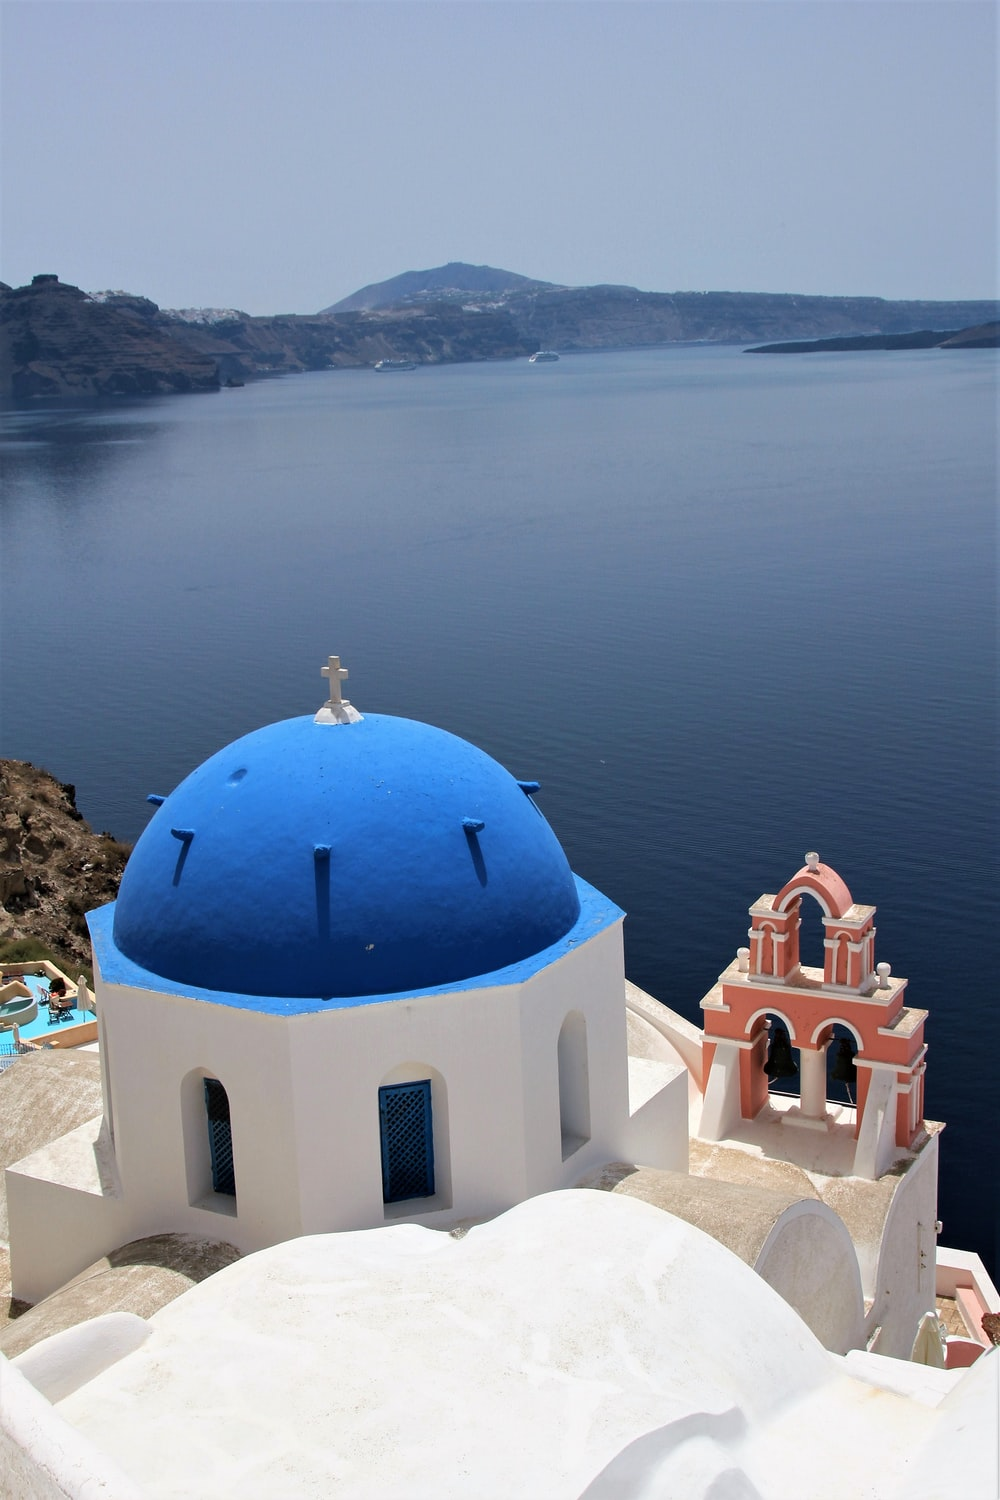 white and blue dome building near body of water during daytime